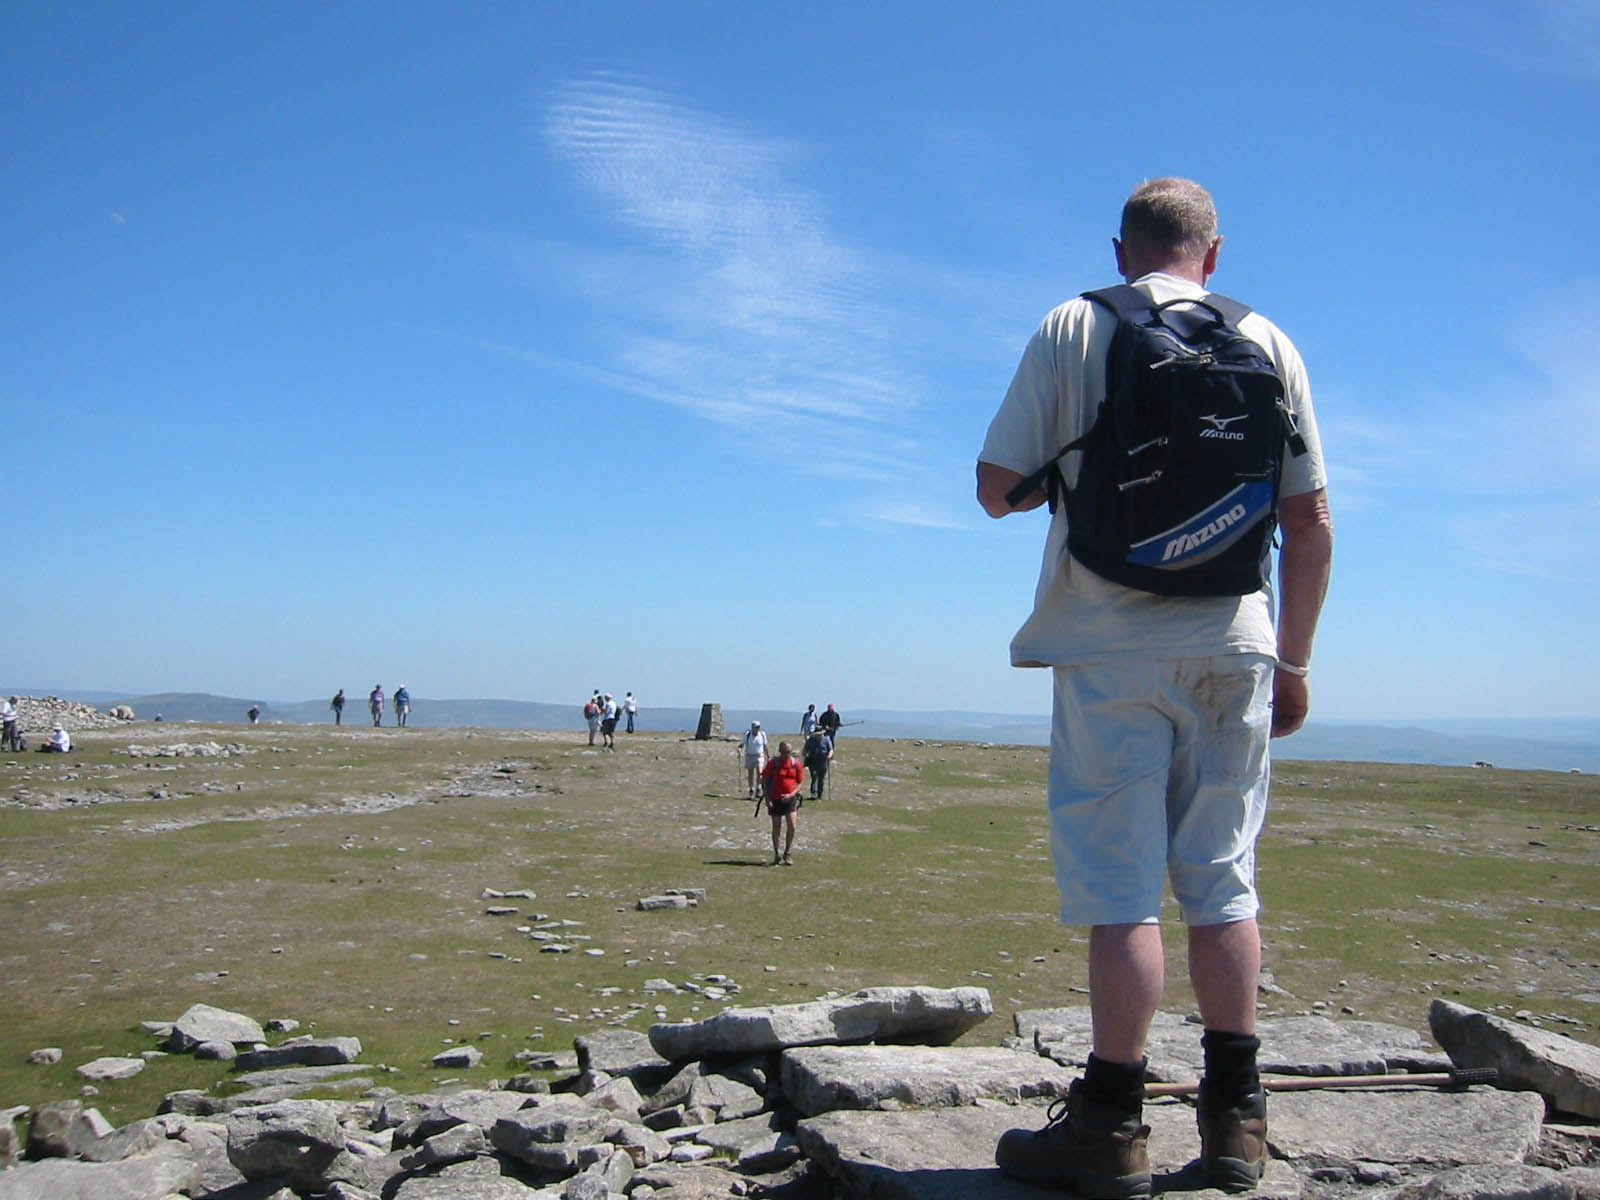 A gentle walk may not be enough: climbing to Ingleborough's summit plateau will get the lungs going